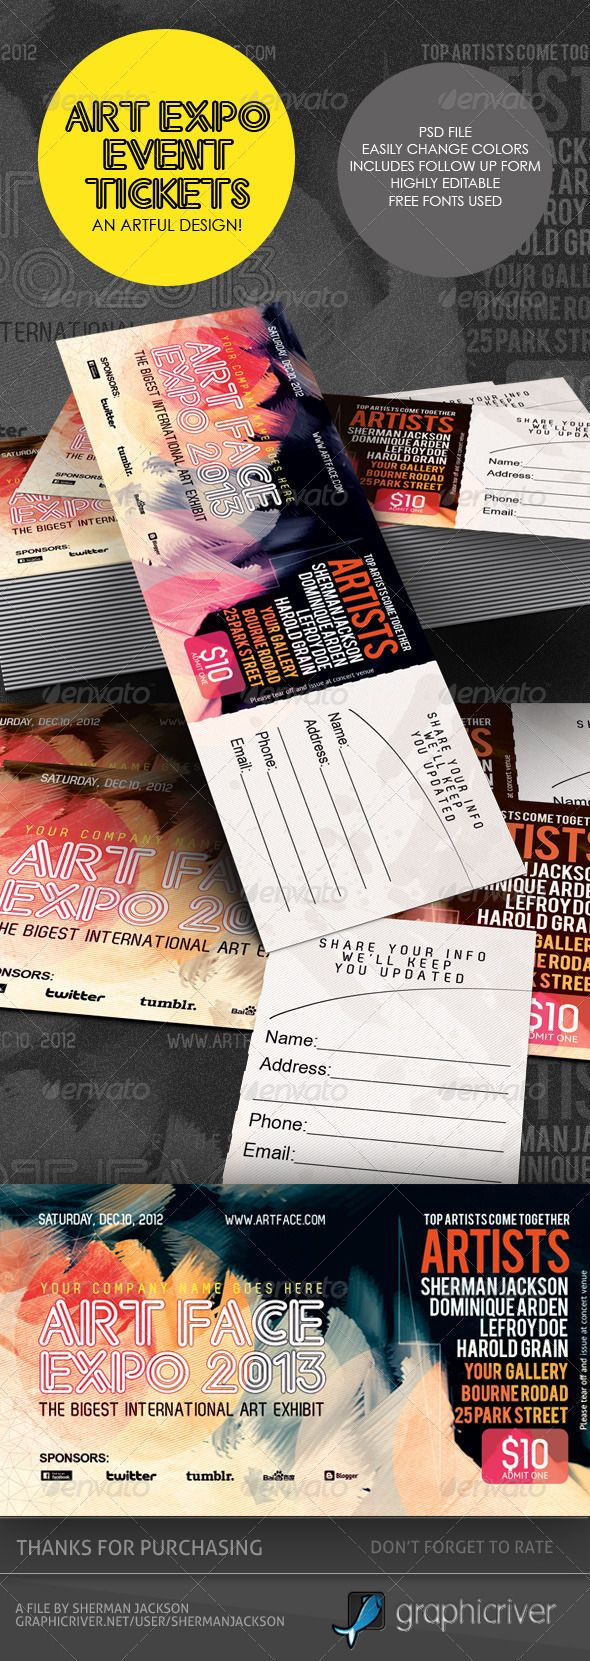 Best Event Ticket Images On Pinterest Ticket Design Print